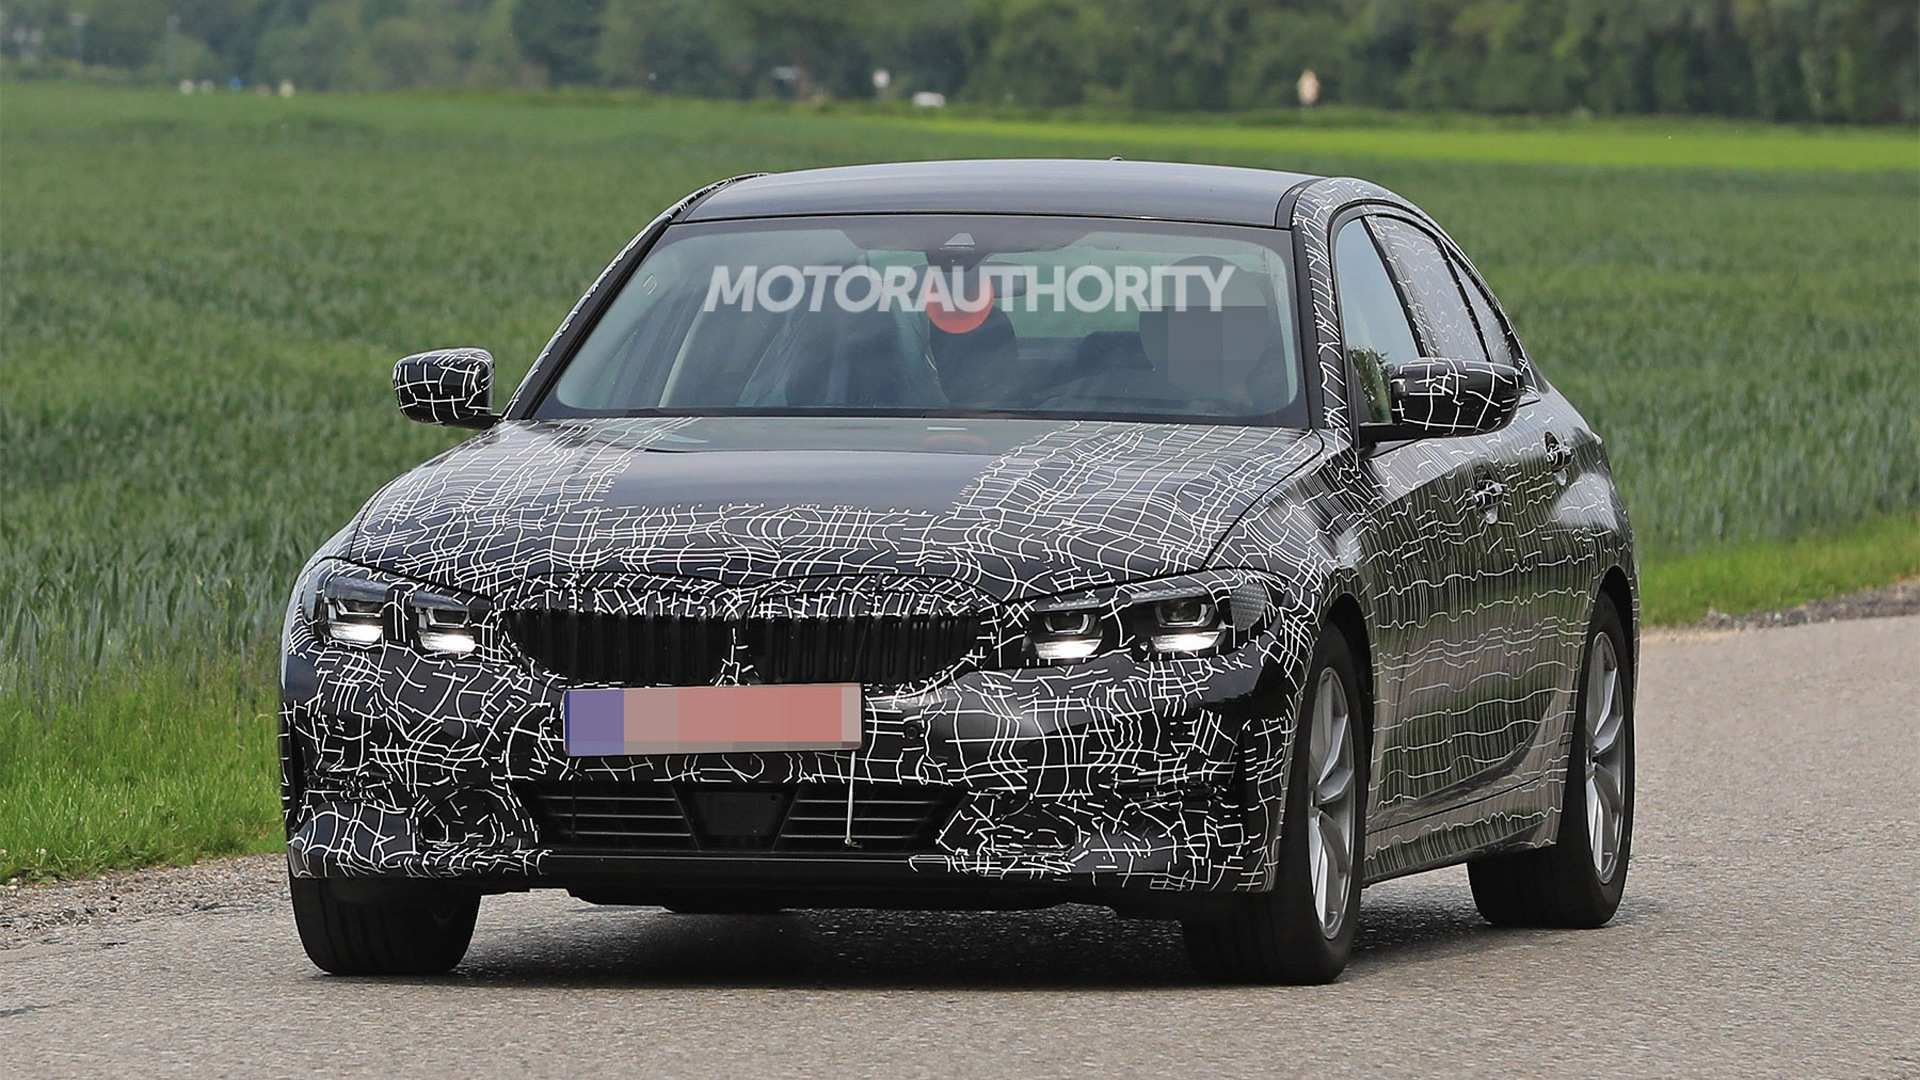 91 Great 2020 Spy Shots BMW 3 Series Price by 2020 Spy Shots BMW 3 Series